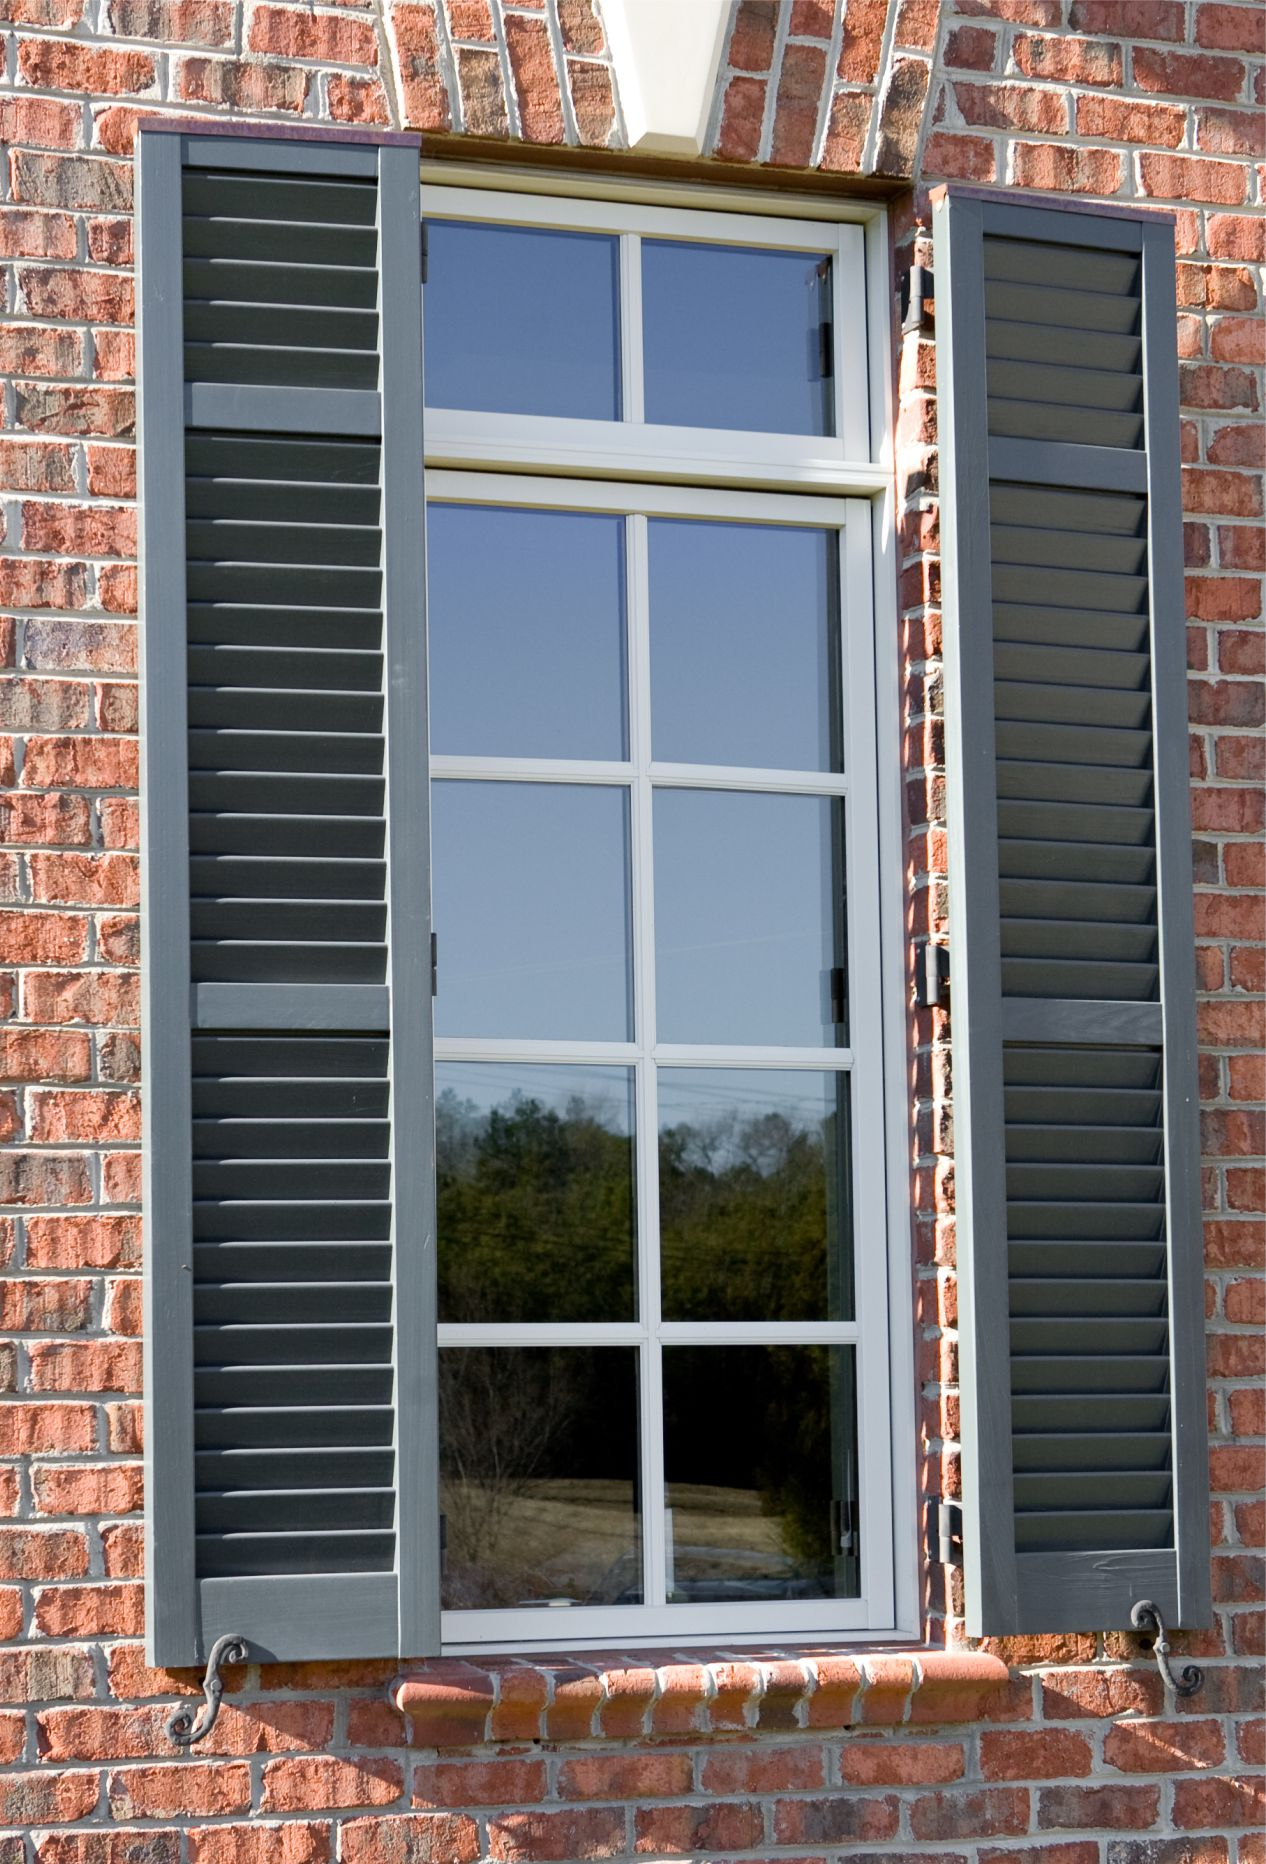 Exterior window shutters on brick home.